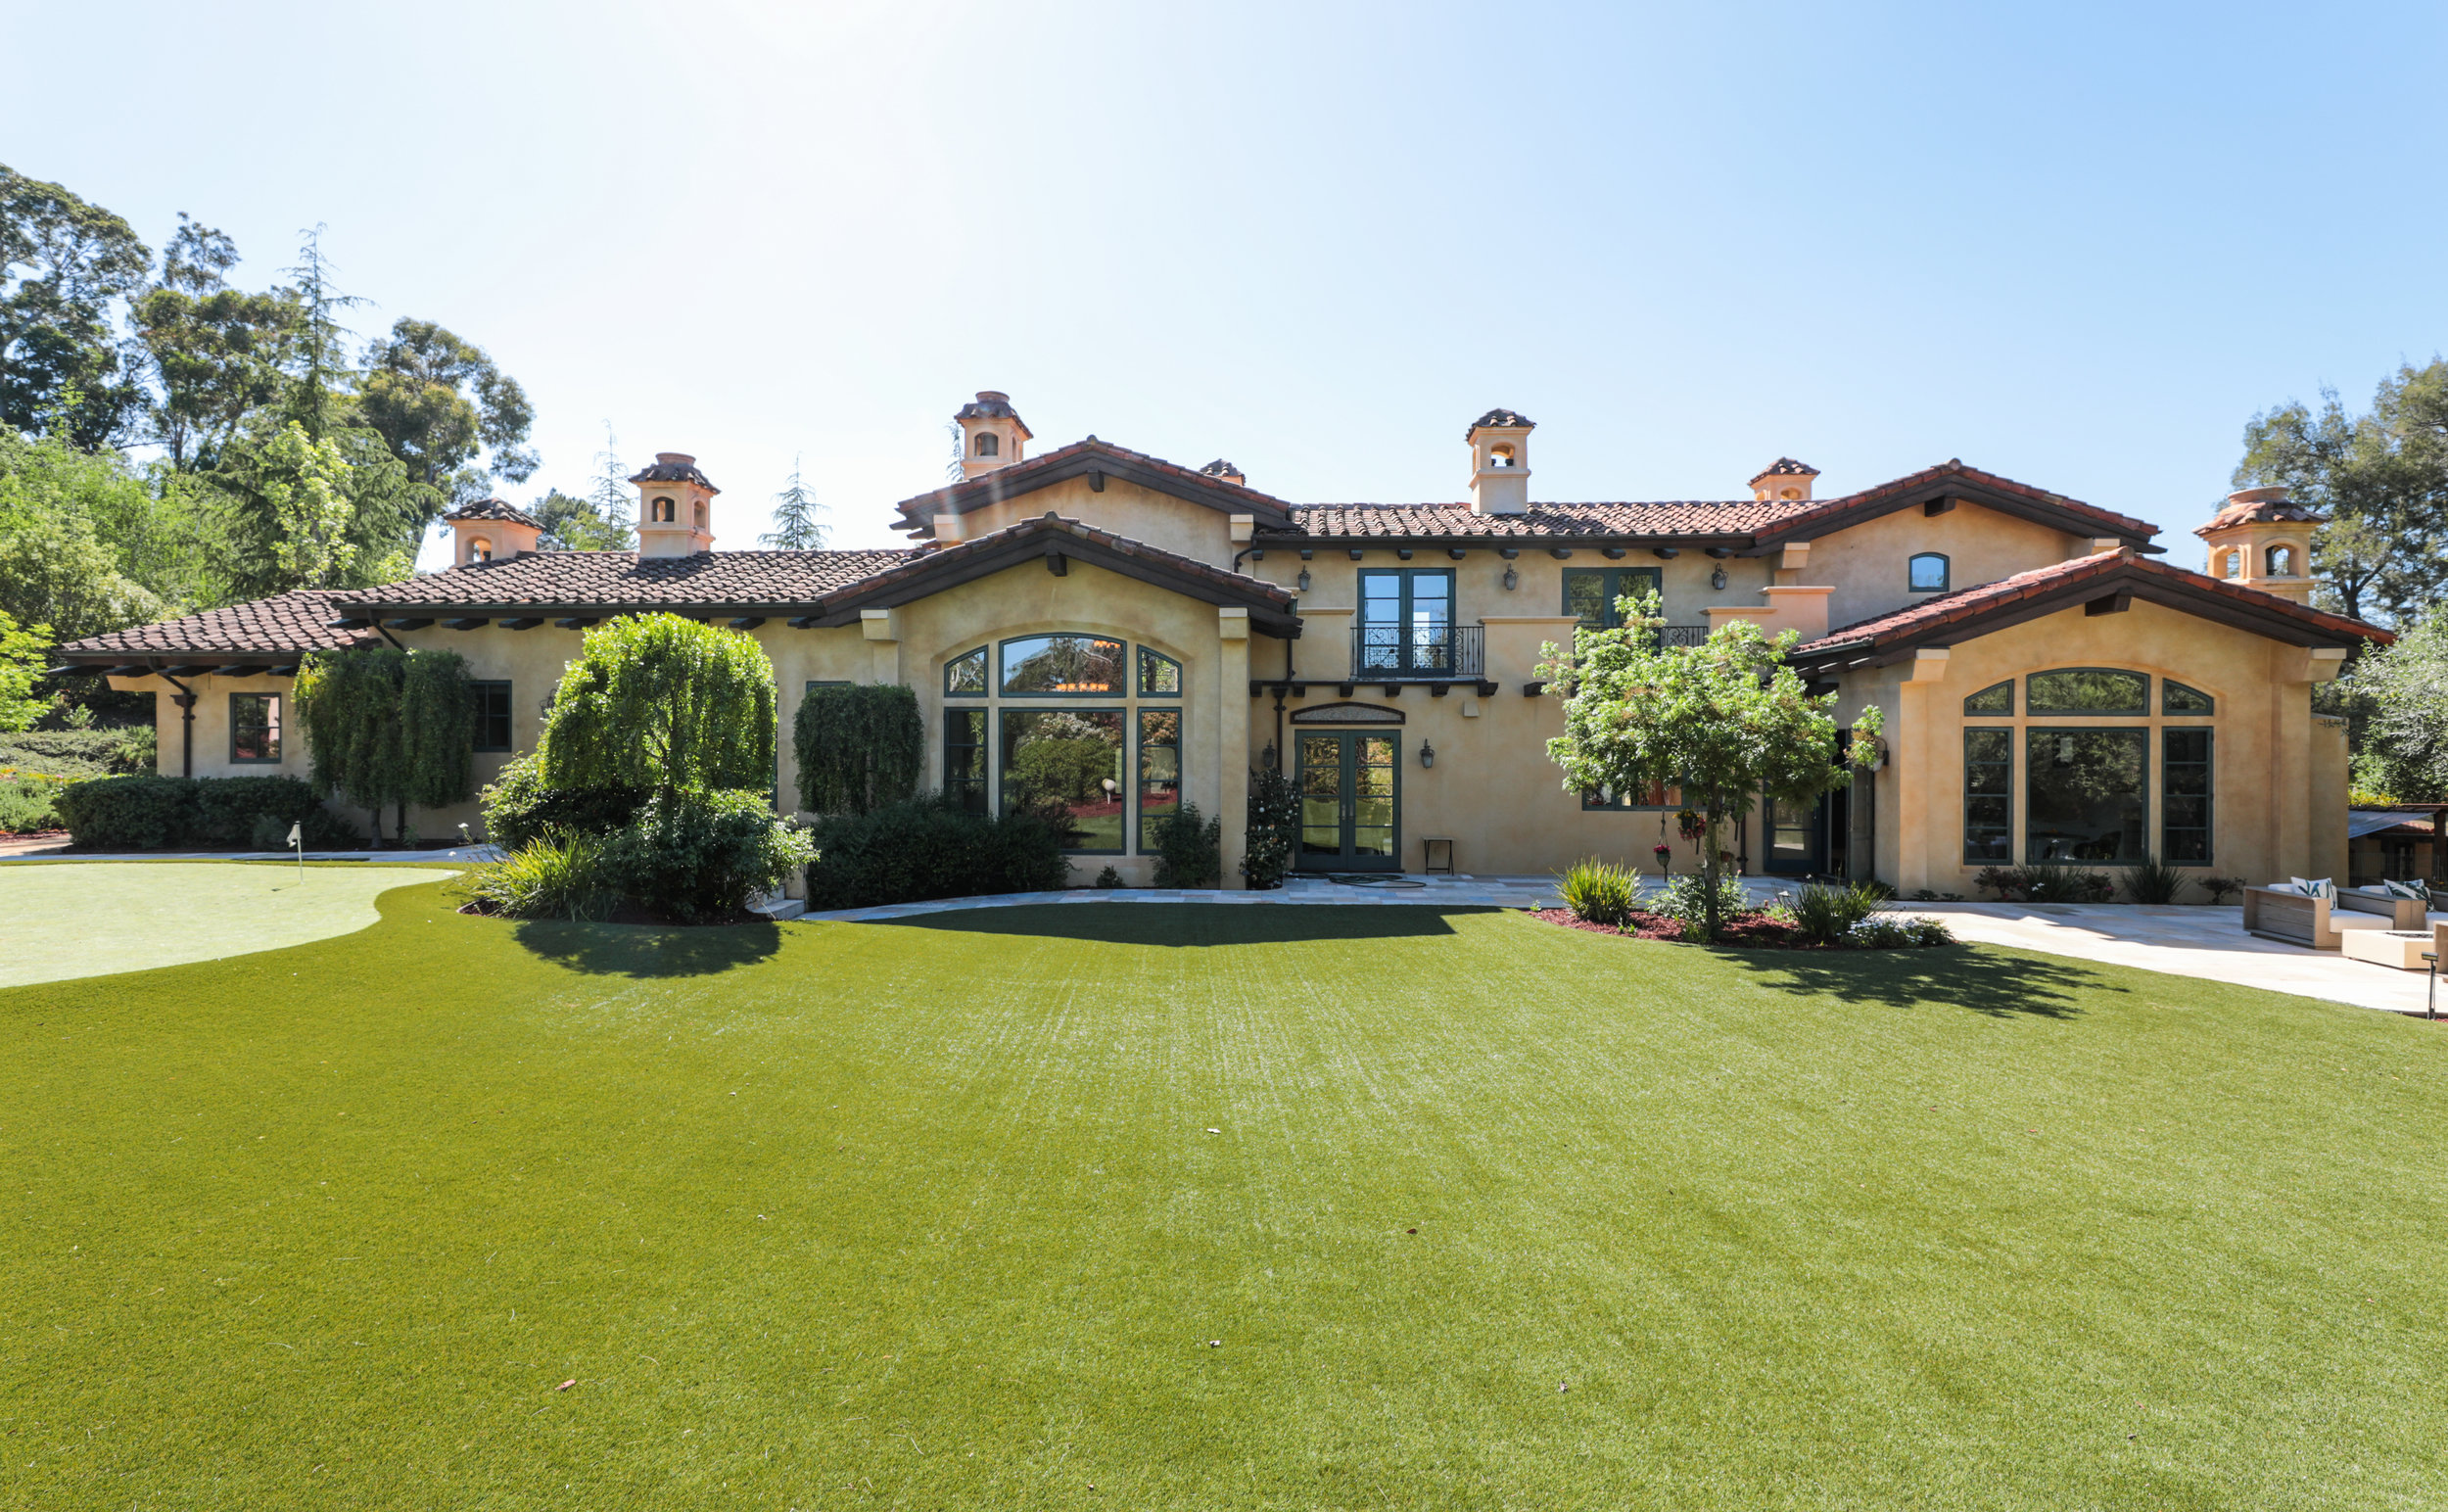 13936 FREMONT PINES, LOS ALTOS HILLS - SOLD: $8,798,800 | Represented Seller